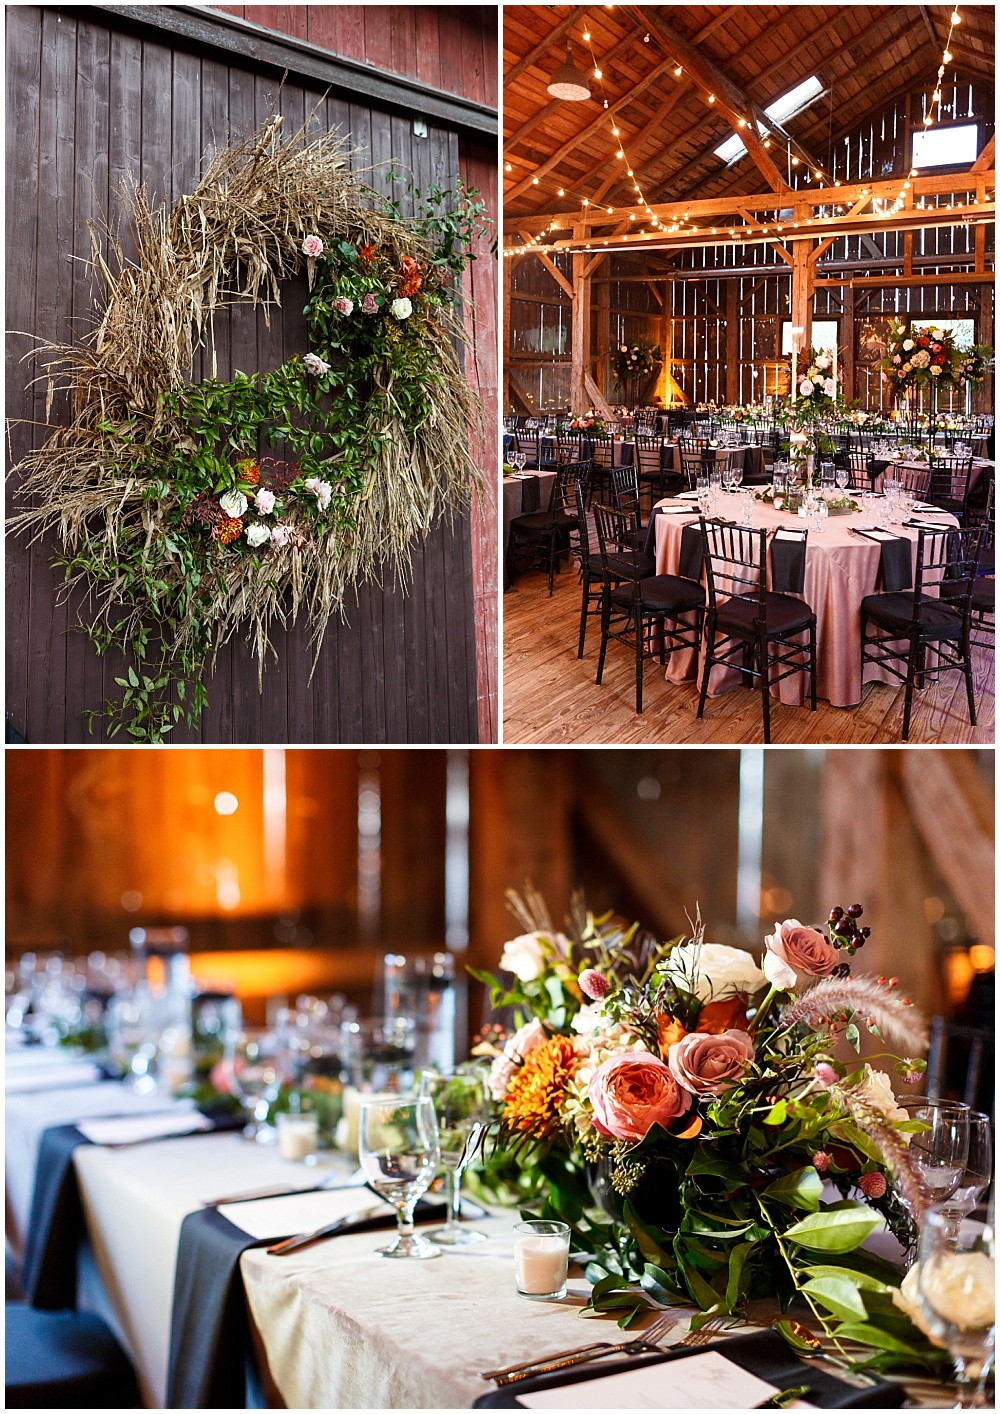 Rustic wedding tablescape with lush fall blooms and gold accents | Fall Indianapolis Traders Point Creamery garden wedding - fall, rustic details with an abundance of wedding blooms, velvet linens and fun details with Bobbi Photo and Jessica Dum Wedding Coordination